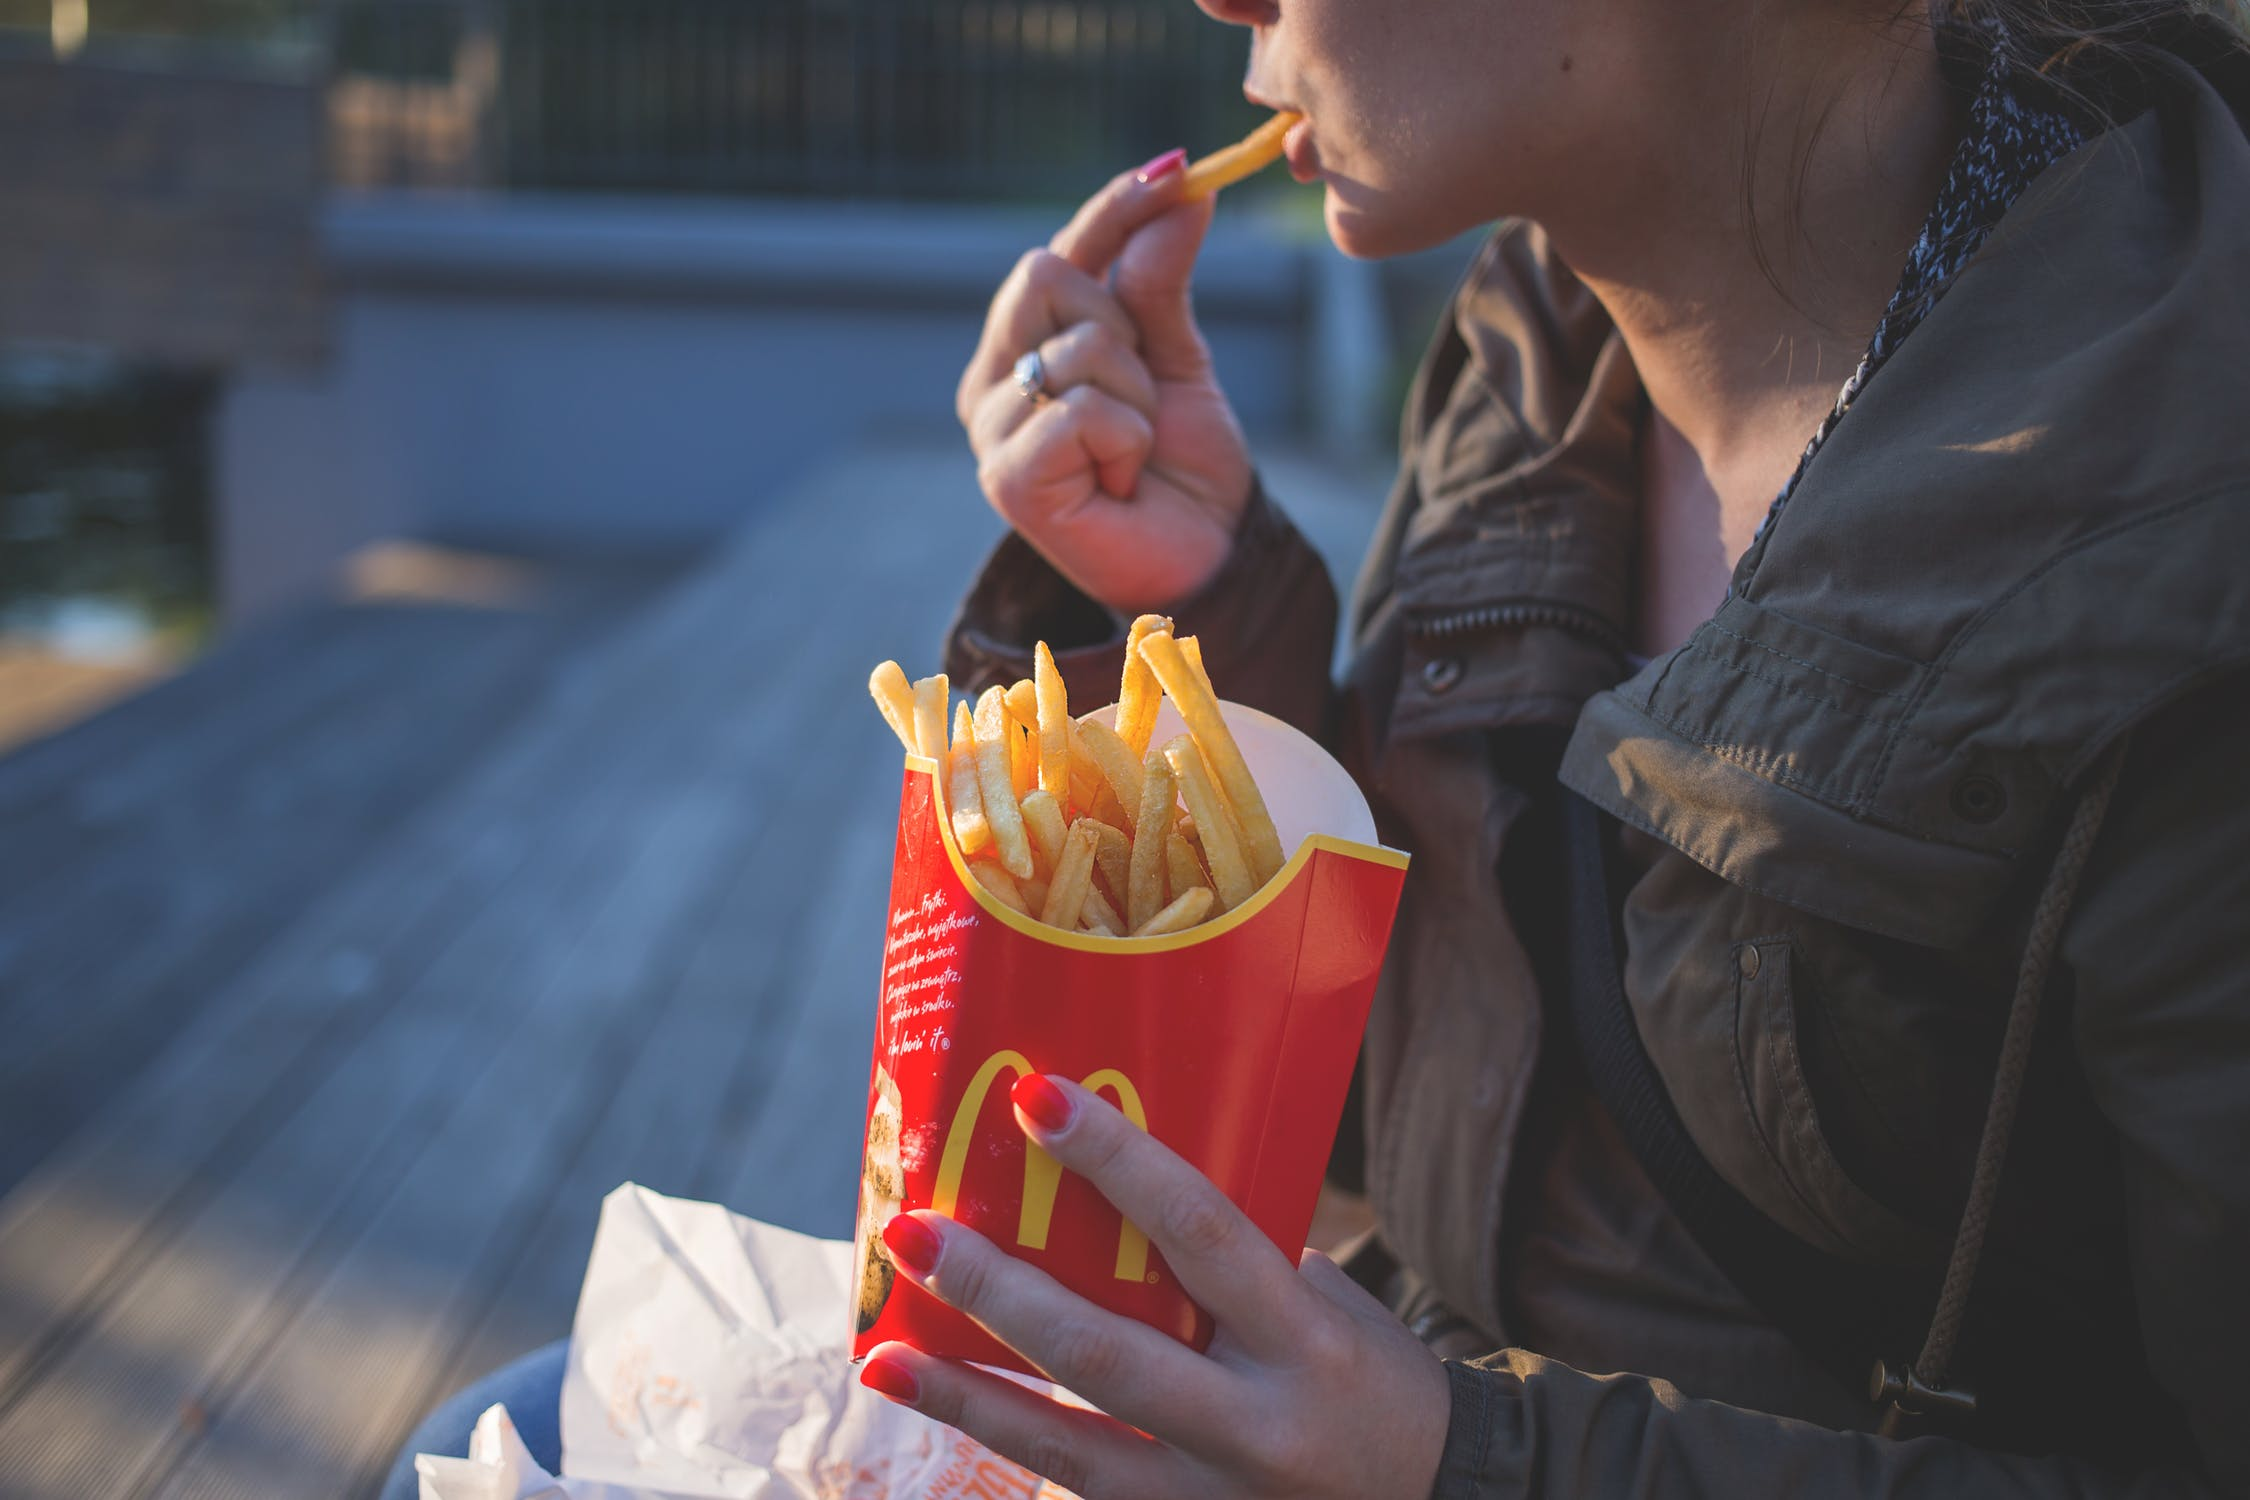 Delicious McDonald's french fries delivered by DoorDash